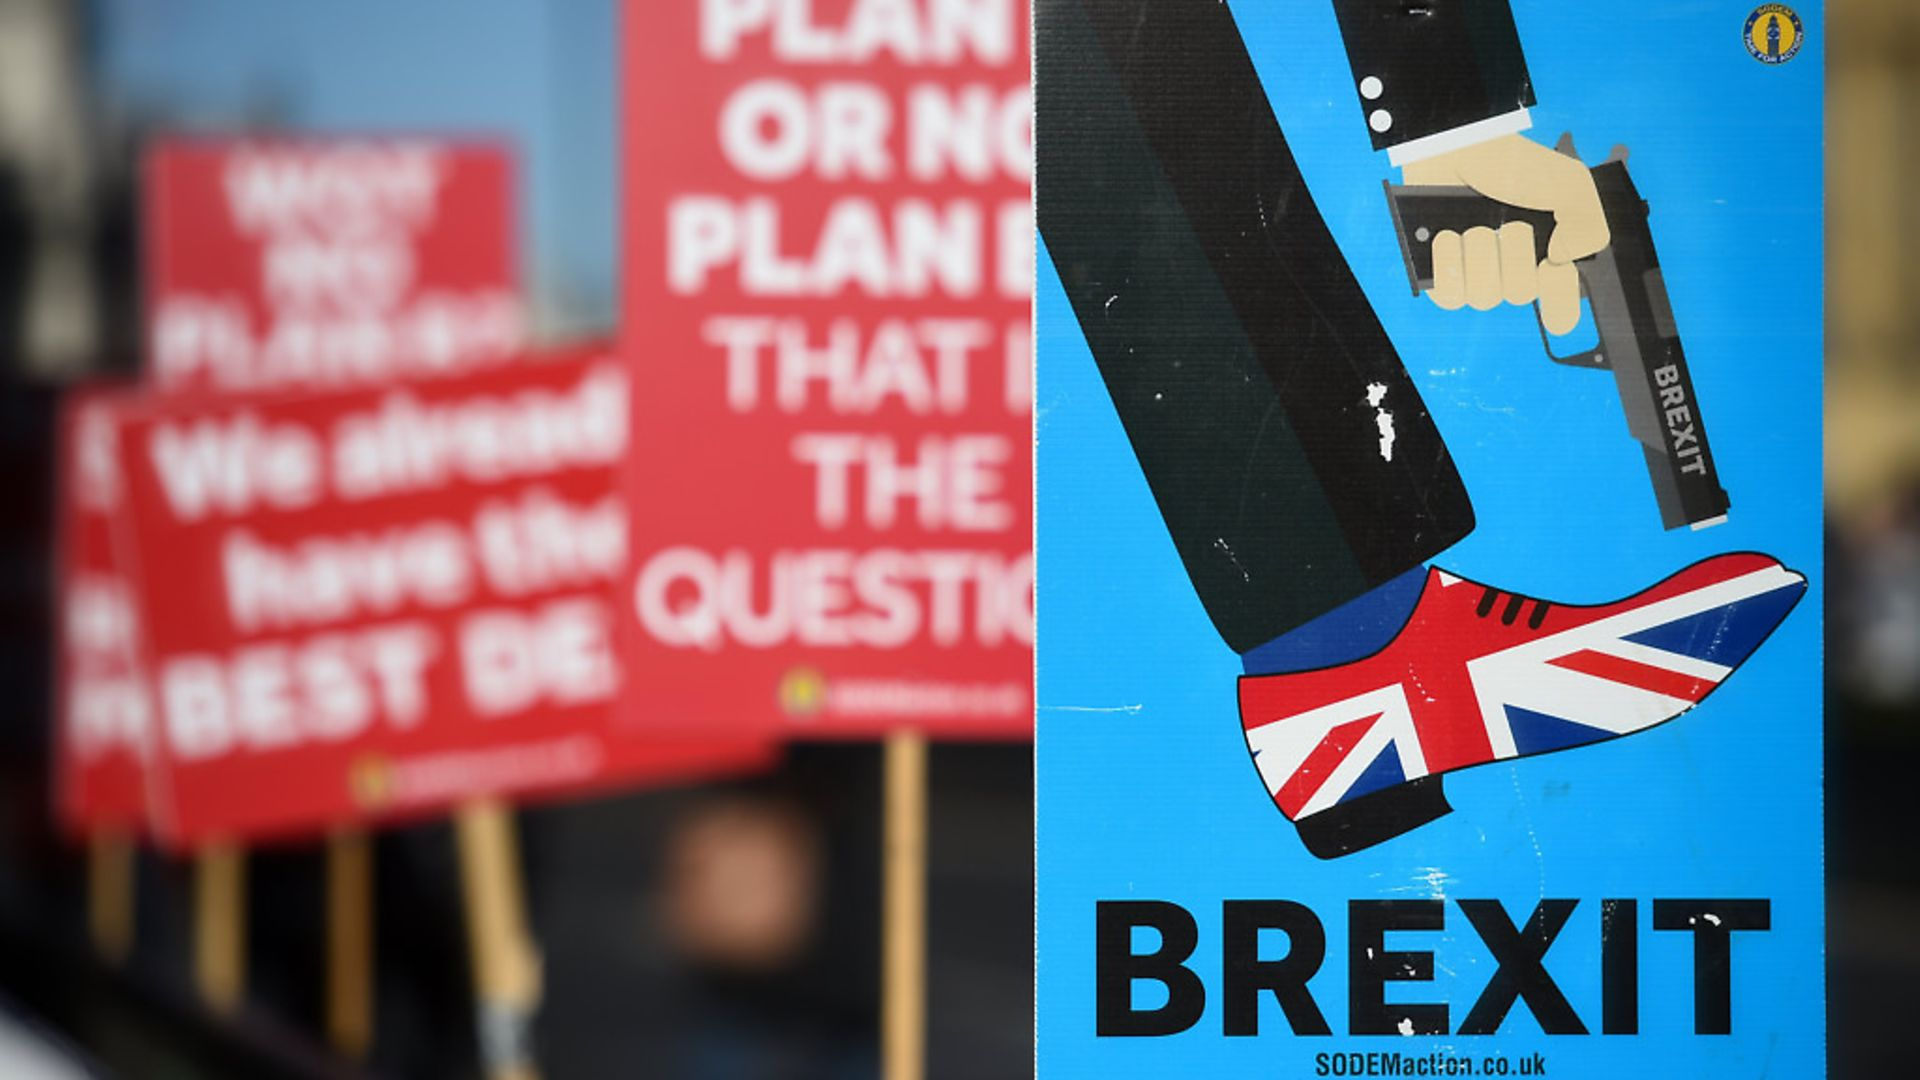 Anti-Brexit campaigners' placards outside the Houses of Parliament. Photograph: Kirsty O'Connor/PA. - Credit: PA Wire/PA Images